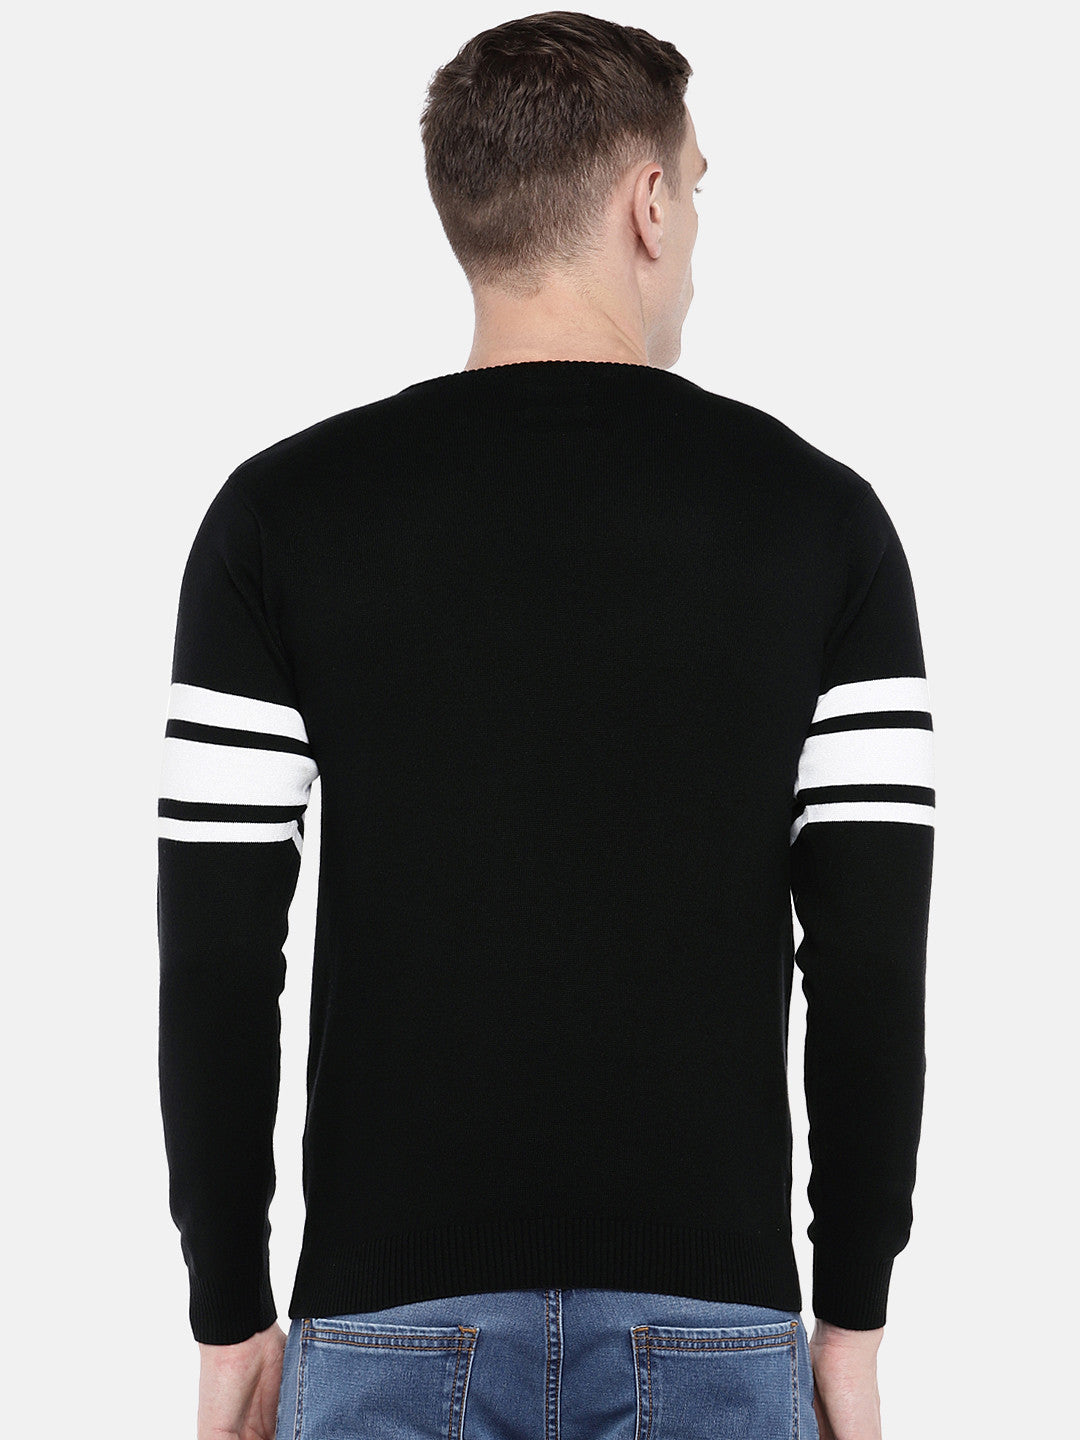 Black & White Colourblocked Round Neck T-shirt-3